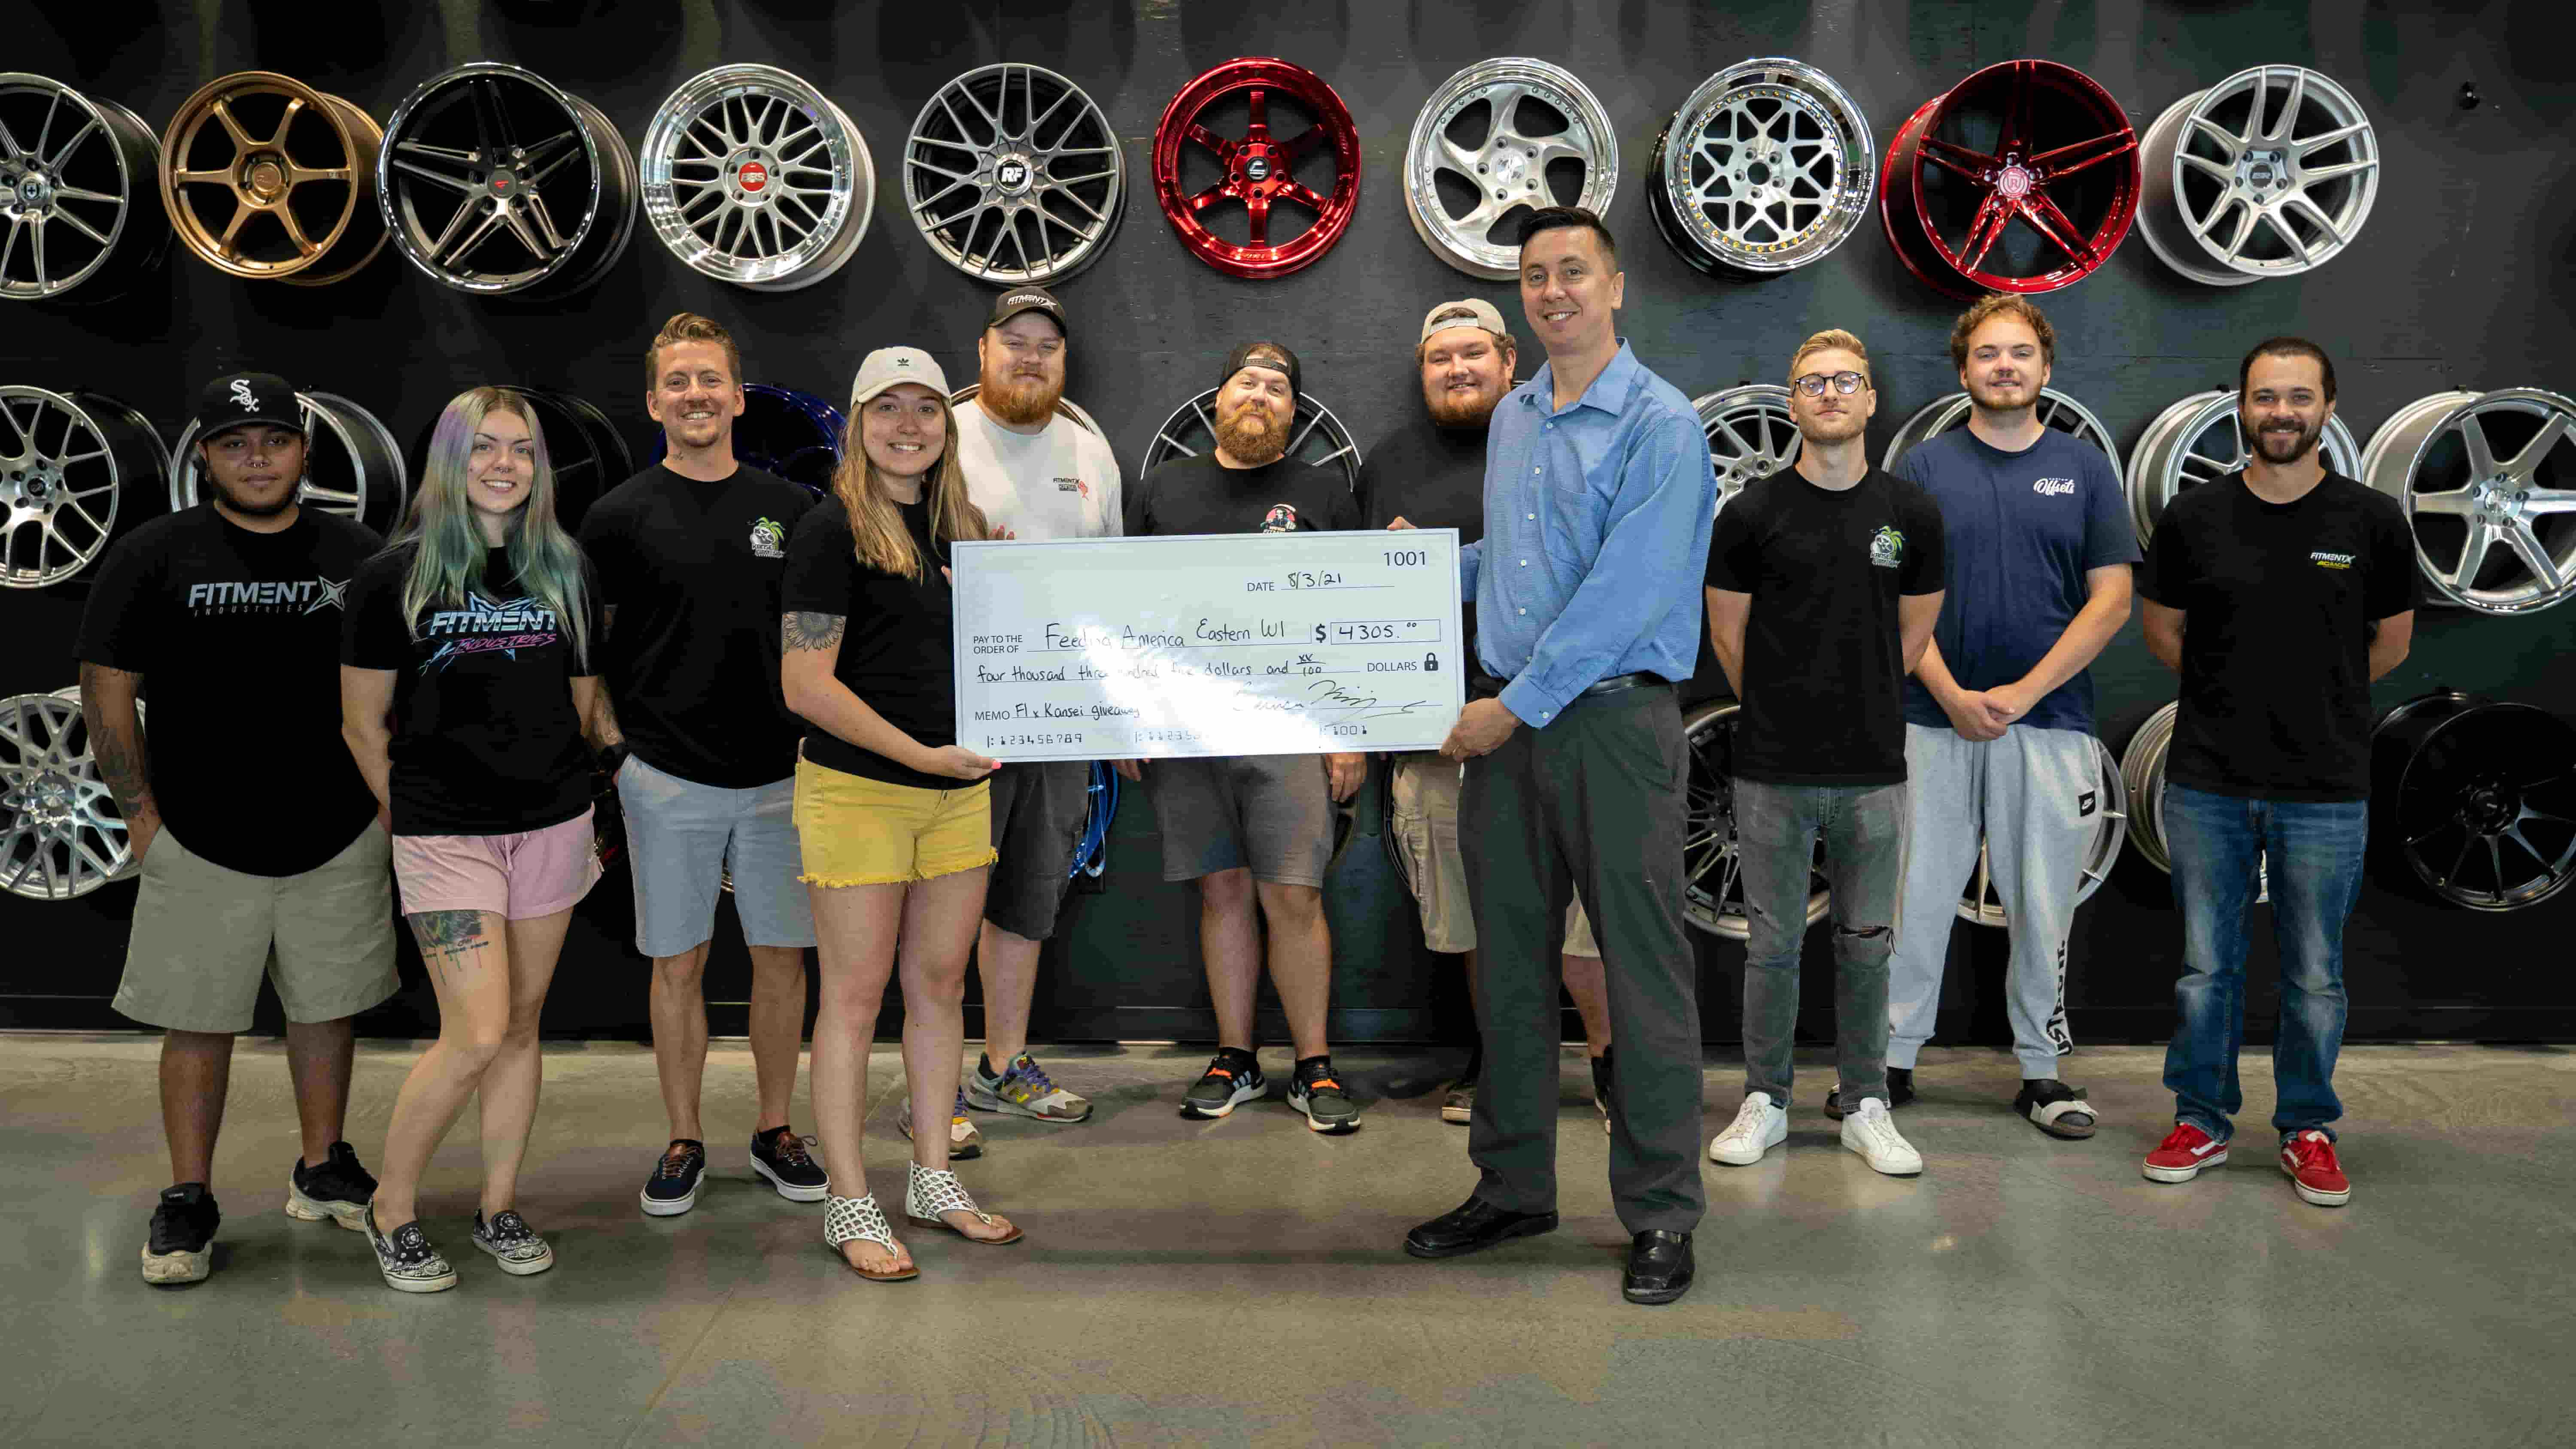 Group picture with the Fitment Industries' team at Feeding America with our $4,305 donation!